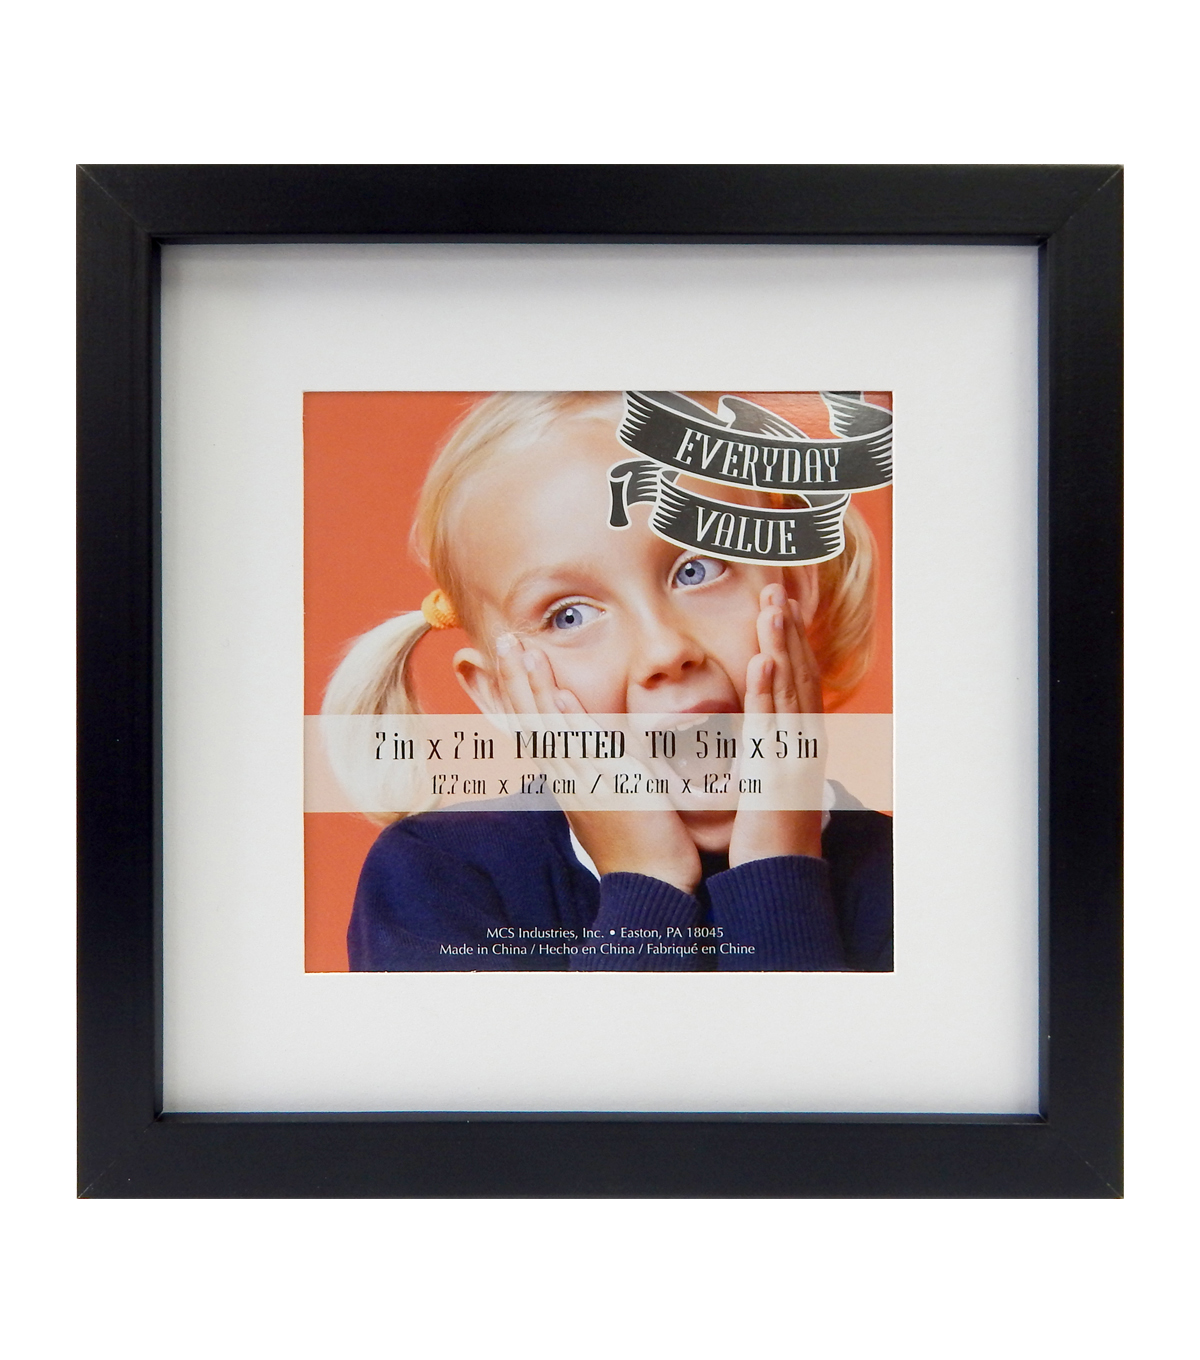 Tabletop Frame 7x7 Black Joann